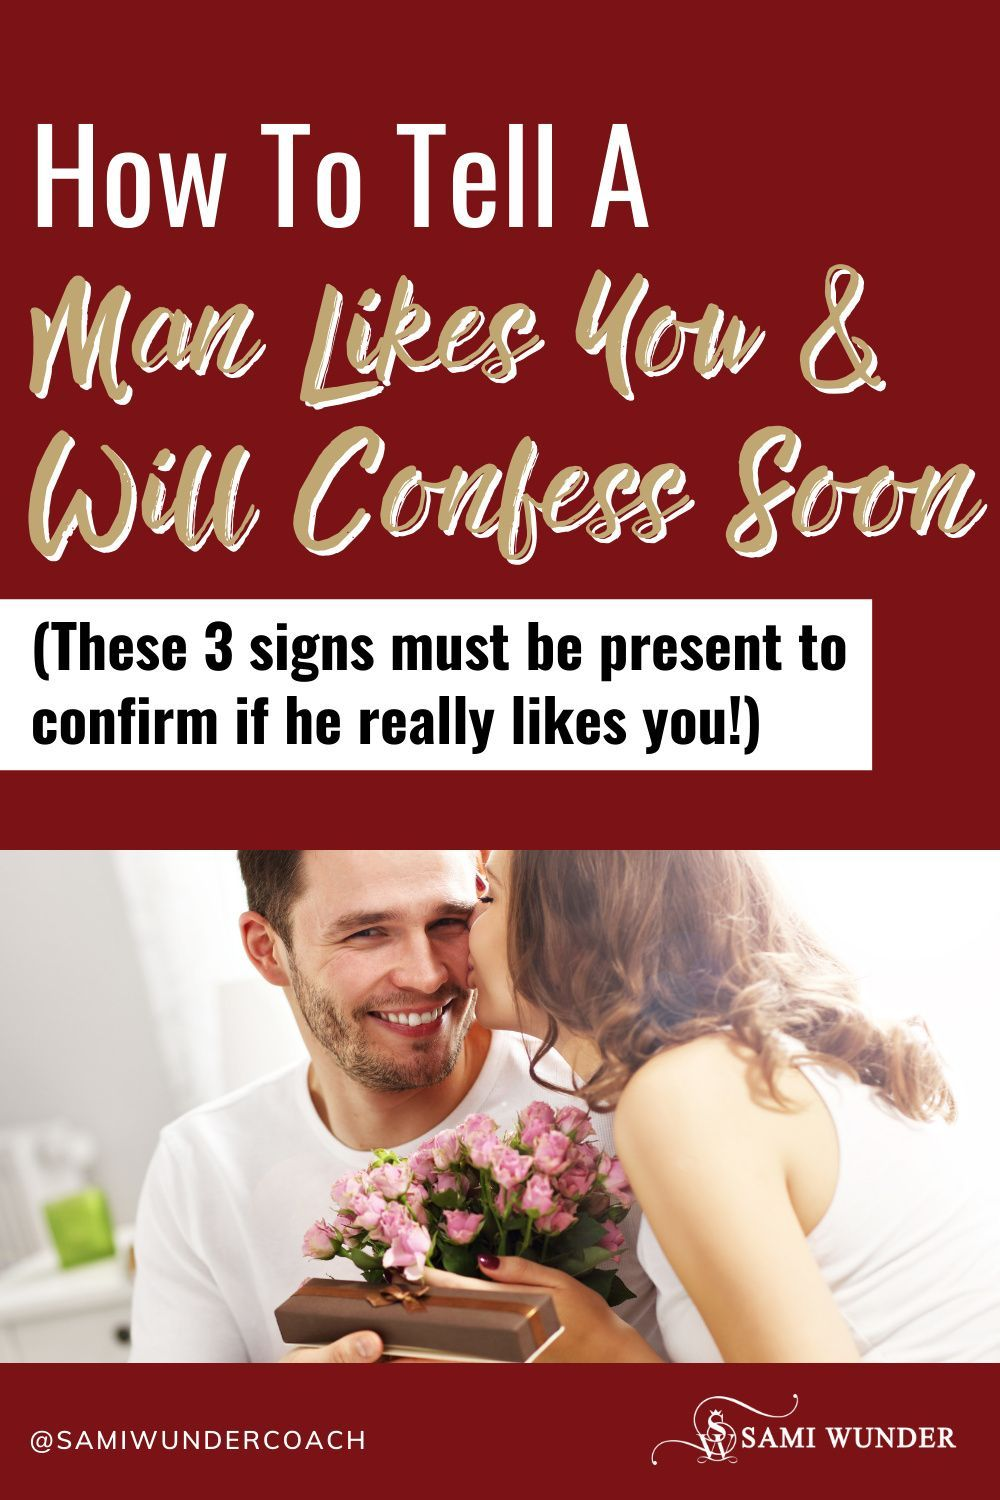 How To Tell A Man Likes You - 3 Sure Signs   Diva Dating